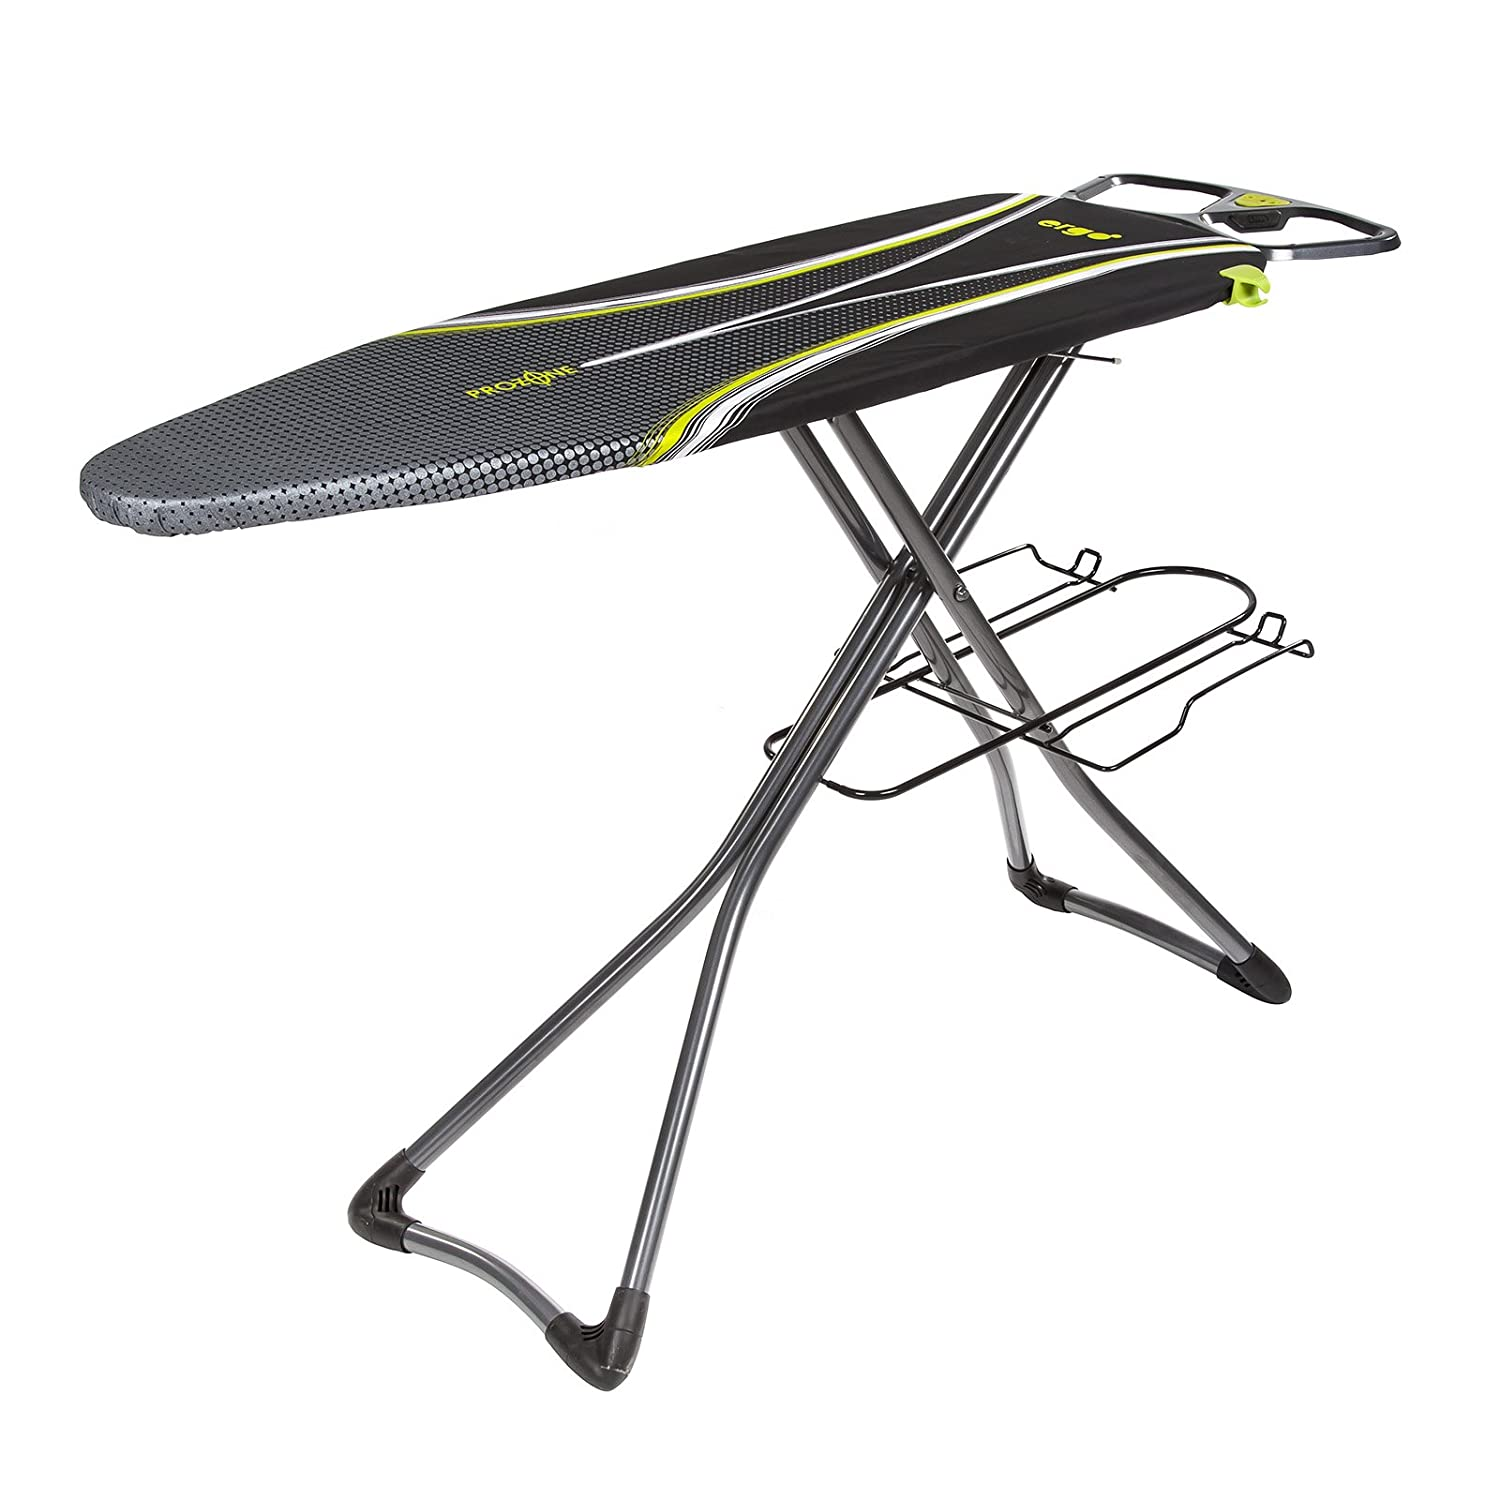 Best Ironing Board 2016: Top 7 Ironing Board Reviews